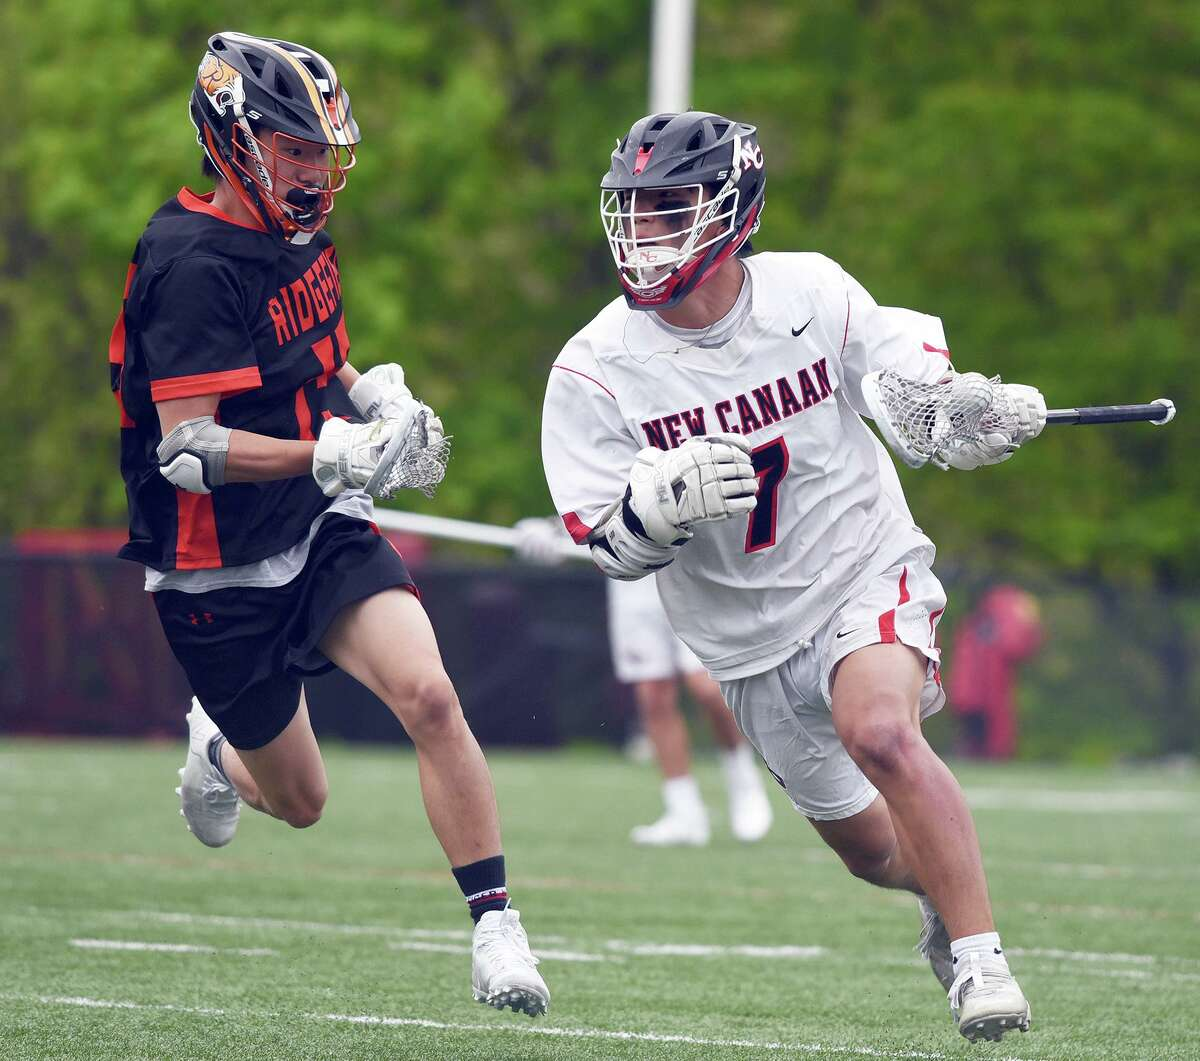 New Canaan's Hayden Shin (7) comes up with the ball during a faceoff, while Ridgefield's Terry Li (15) pursues during a boys lacrosse game at Dunning Field in New Canaan on Saturday, May 8, 2021.